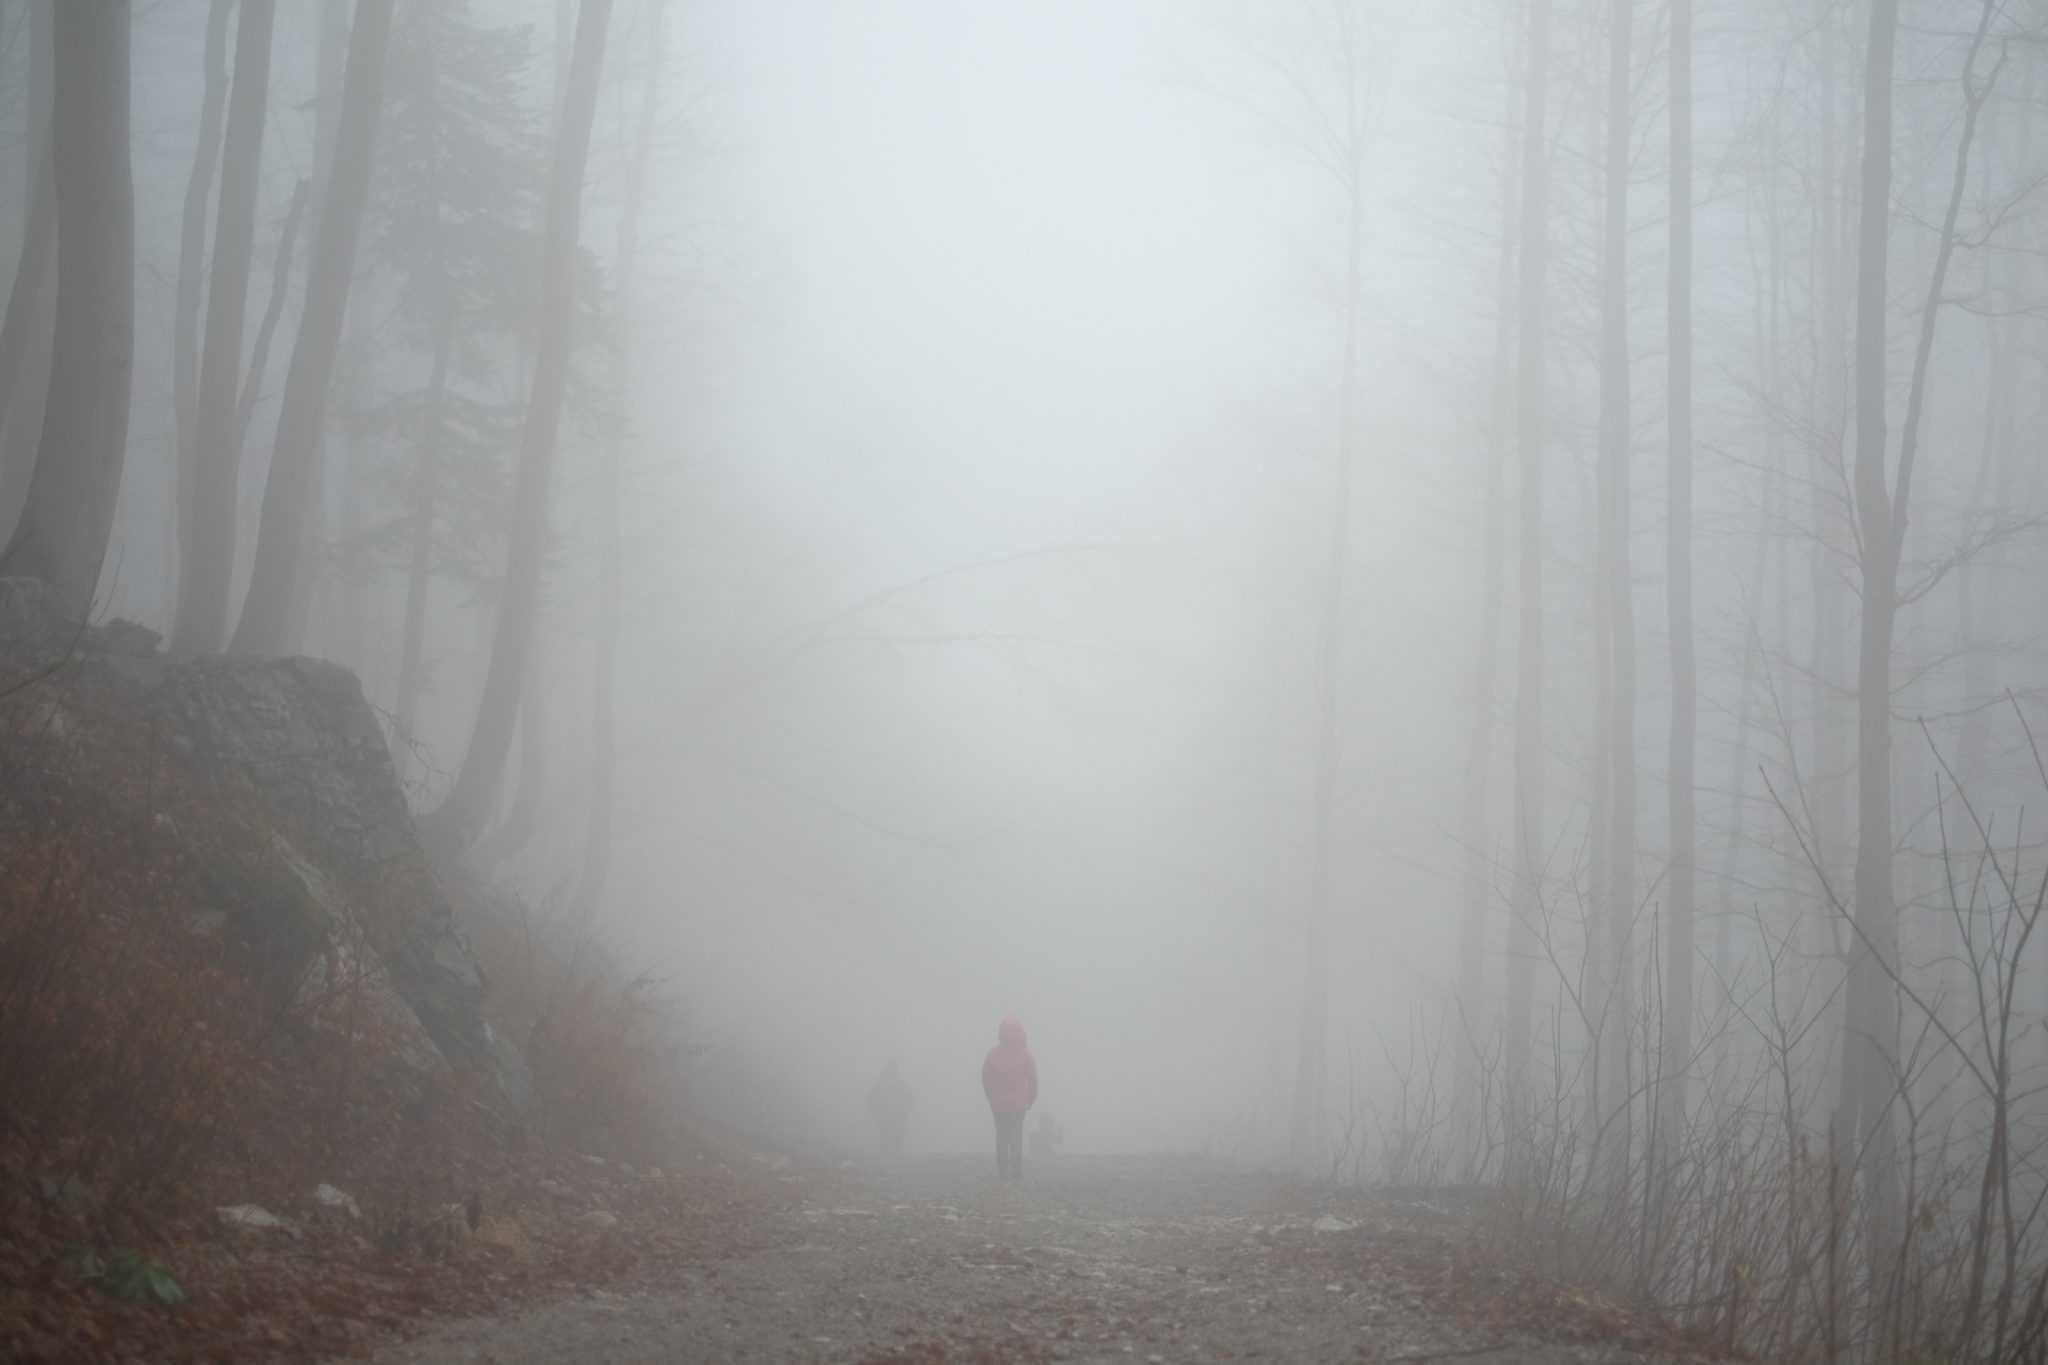 A child walking in the mountains on a foggy day. Photo by: Exploring Slovenia